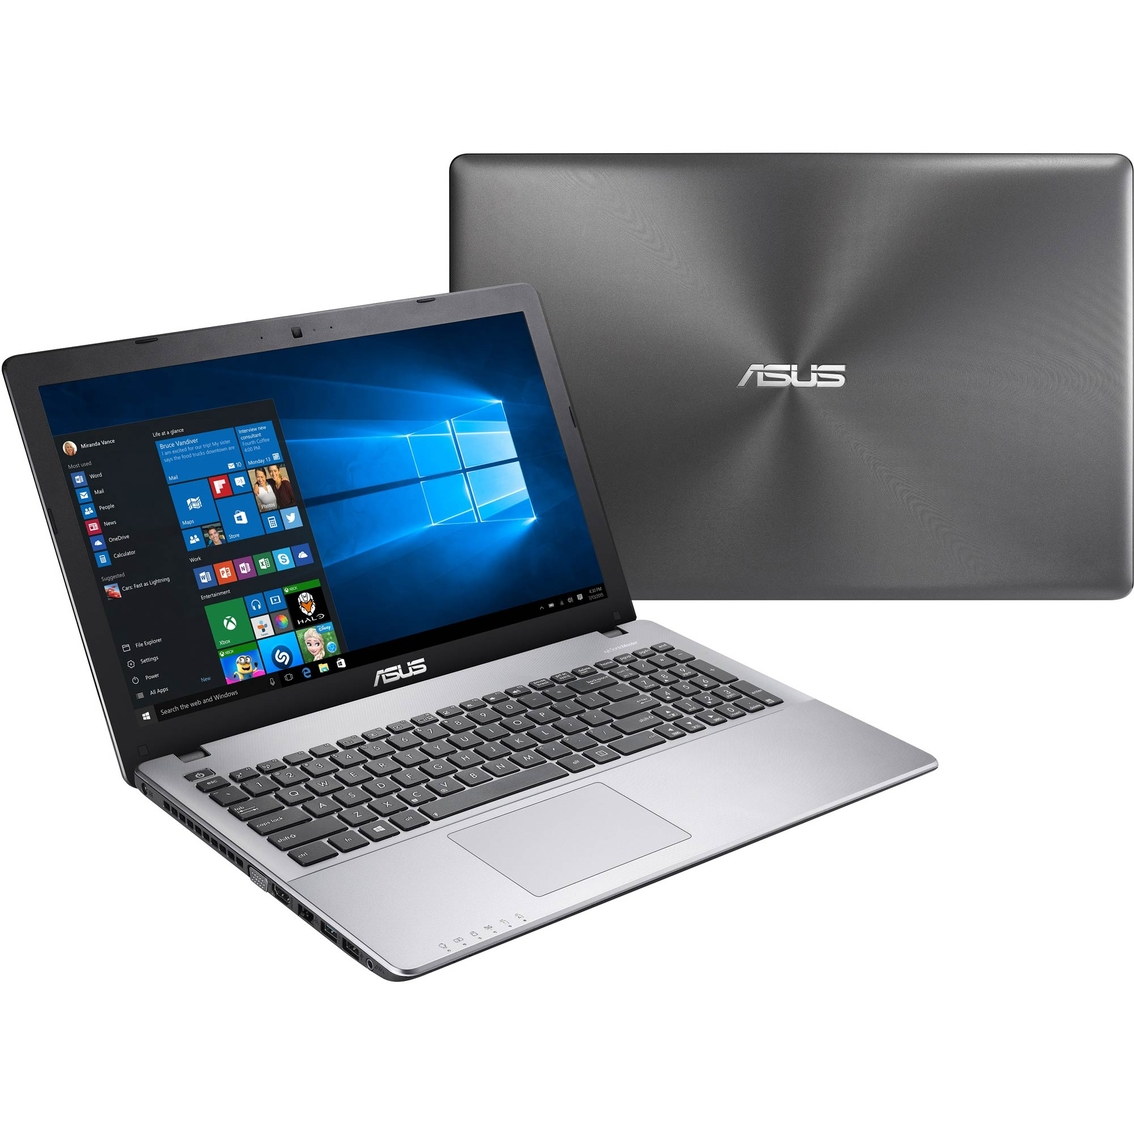 asus 15 6 in amd fx 8gb ram 1tb hhd gaming notebook. Black Bedroom Furniture Sets. Home Design Ideas